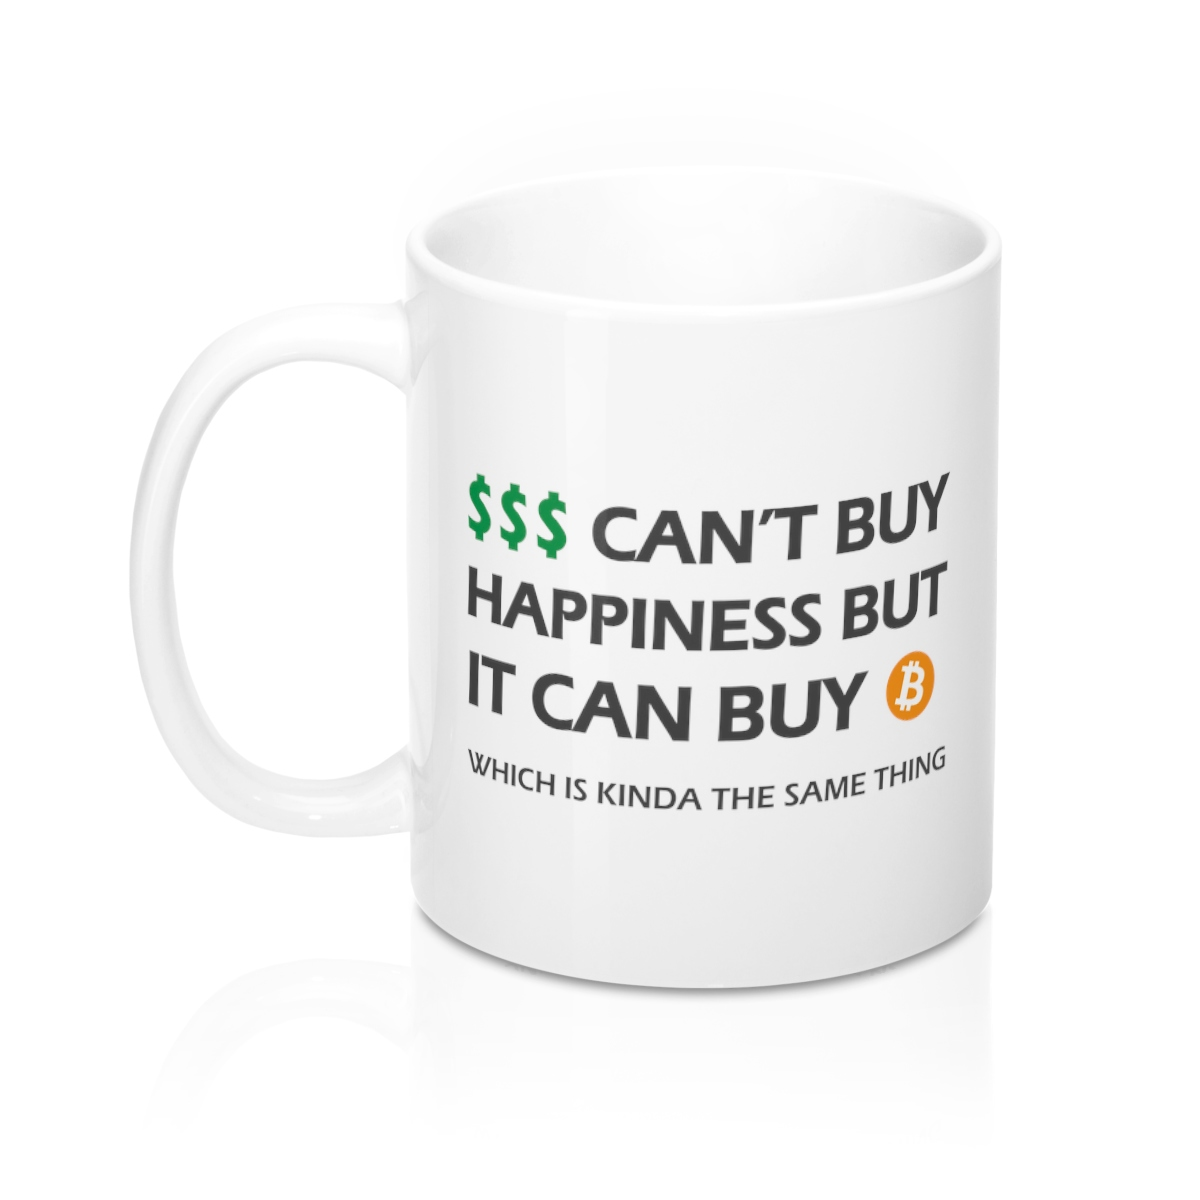 Buy Coffee Mugs Money Can 39t Buy Happiness But It Can Buy Bitcoin Coffee